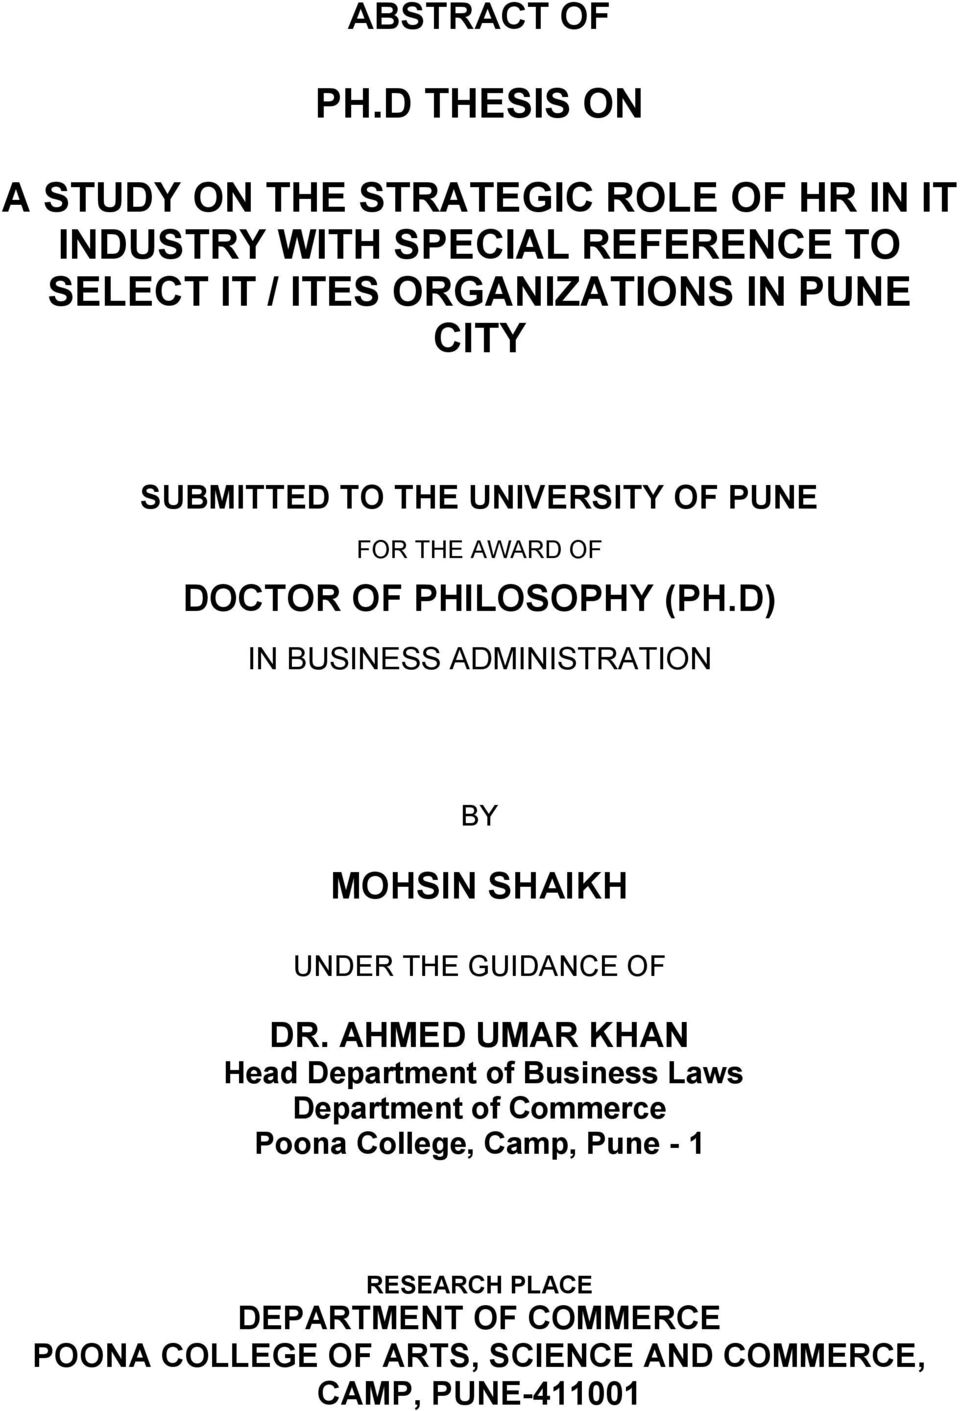 PUNE CITY SUBMITTED TO THE UNIVERSITY OF PUNE FOR THE AWARD OF DOCTOR OF PHILOSOPHY (PH.